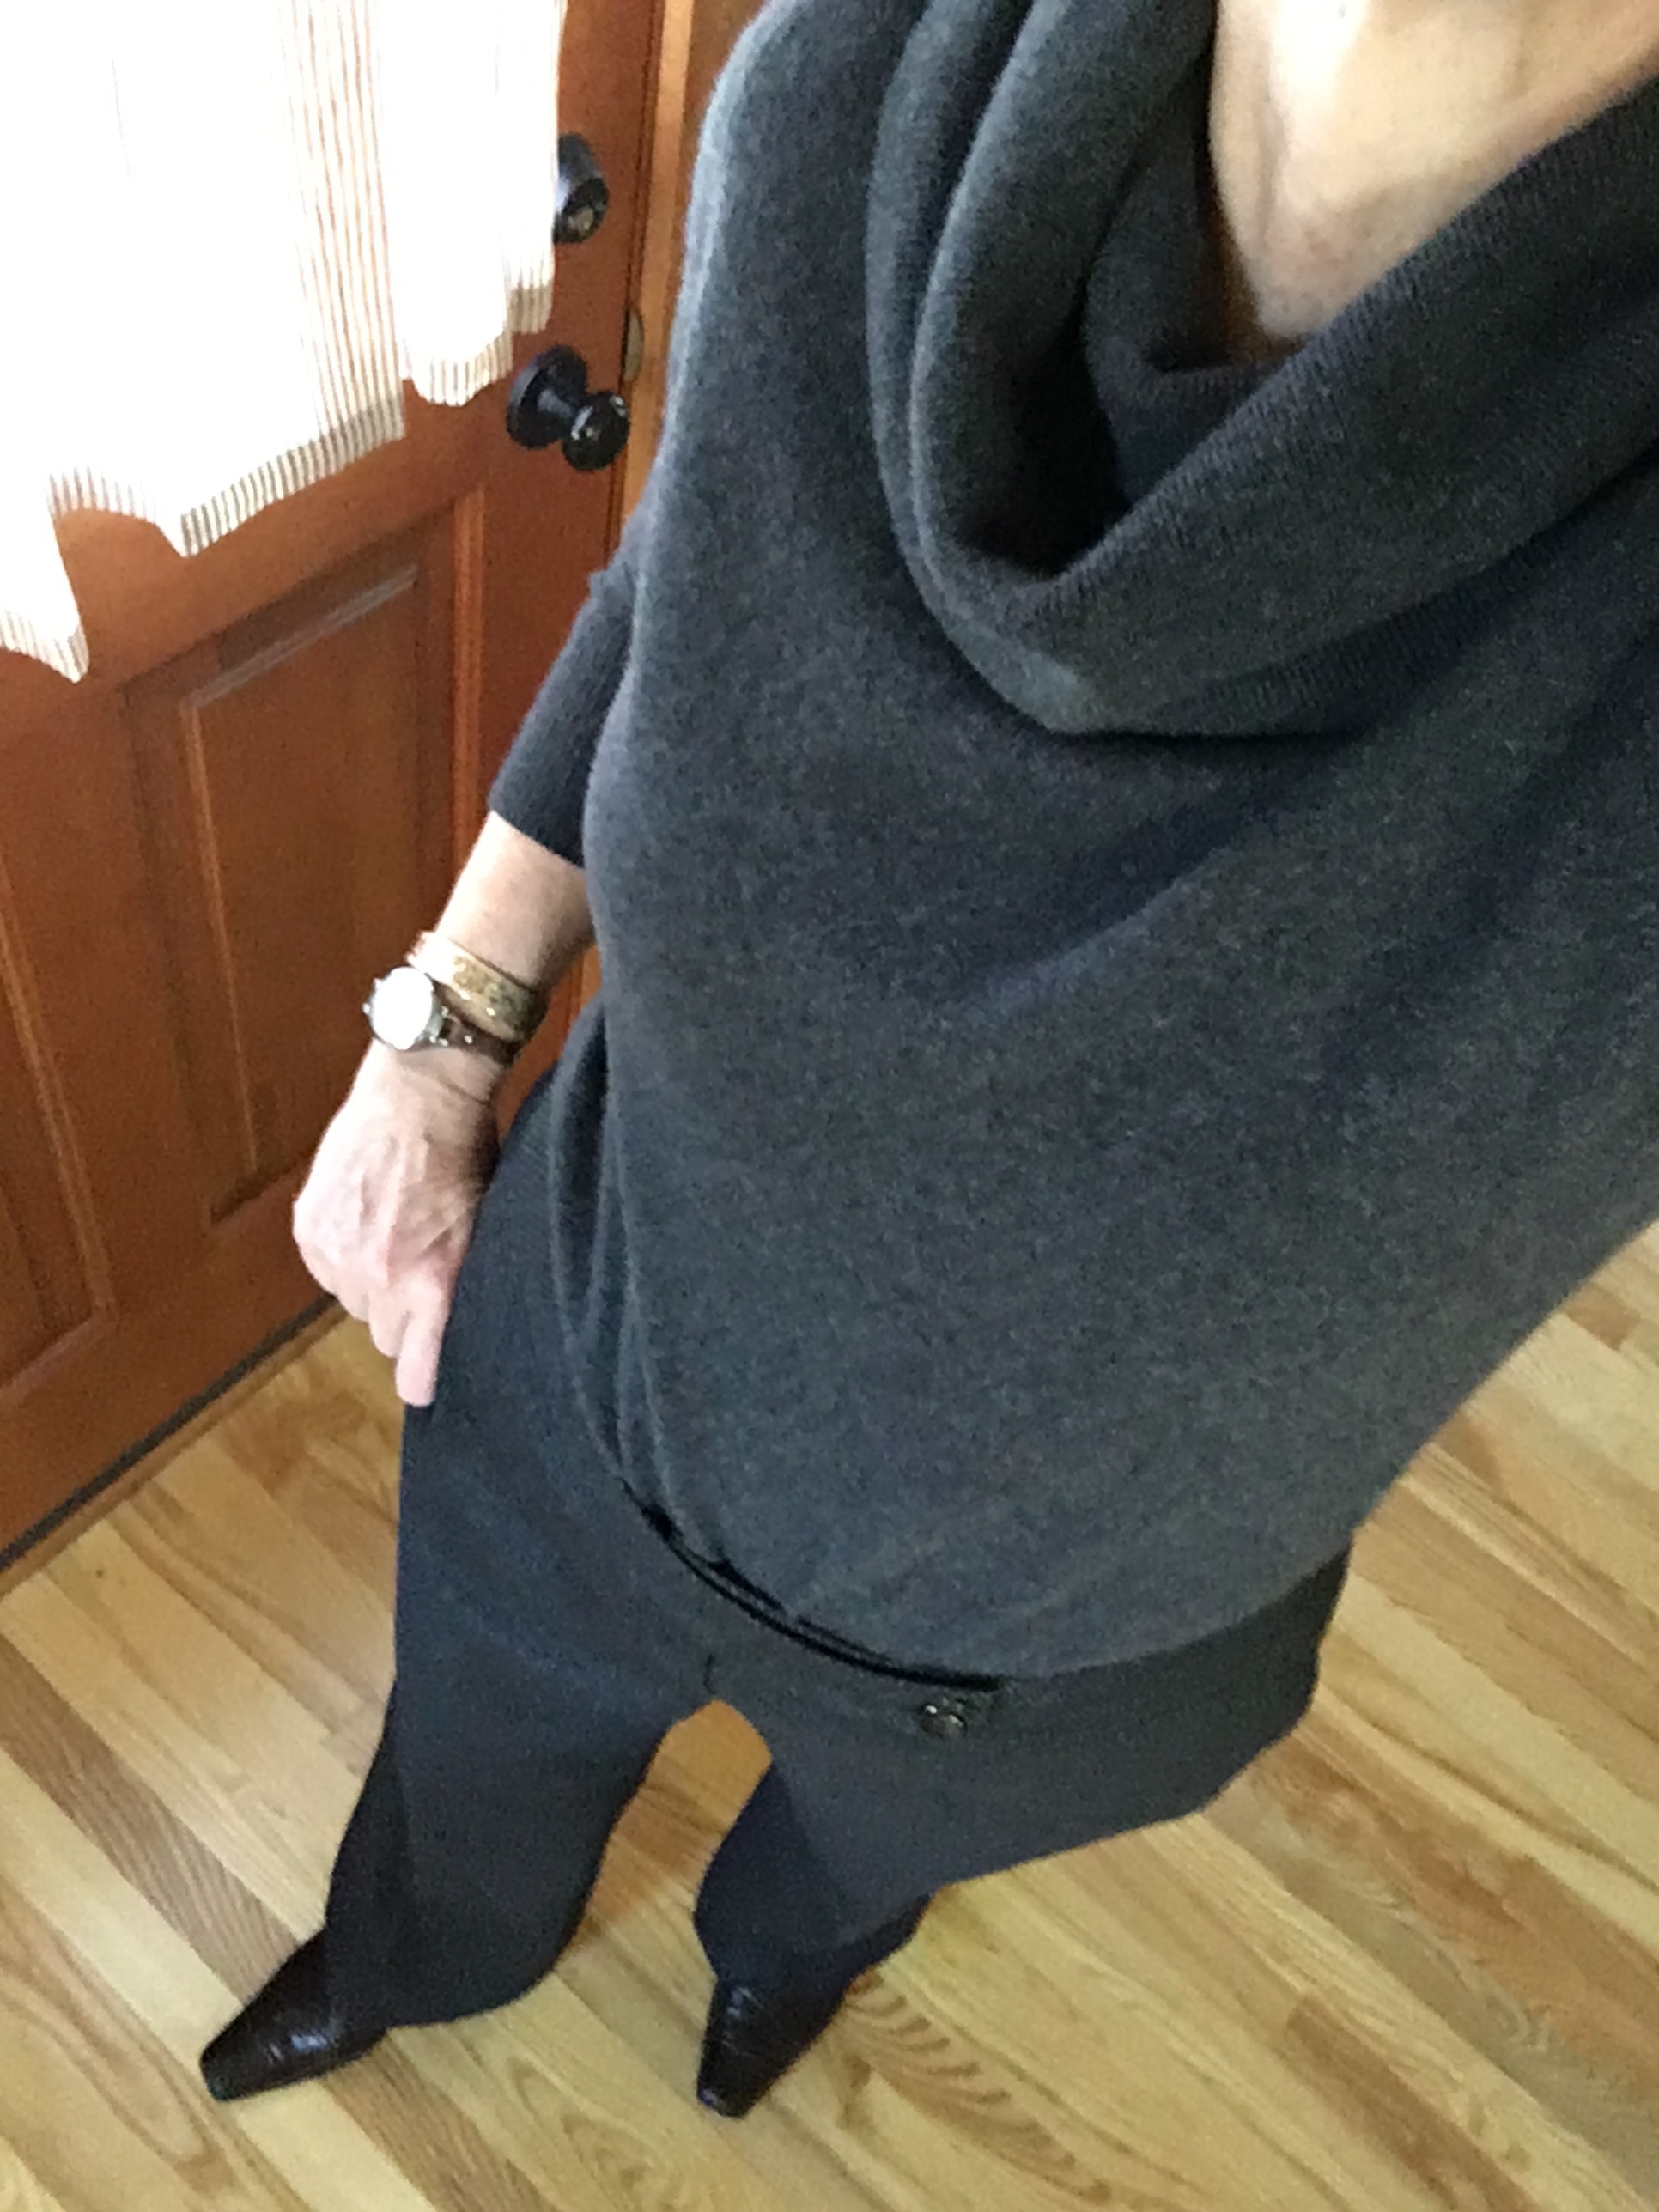 cashmere cowl and dress pants